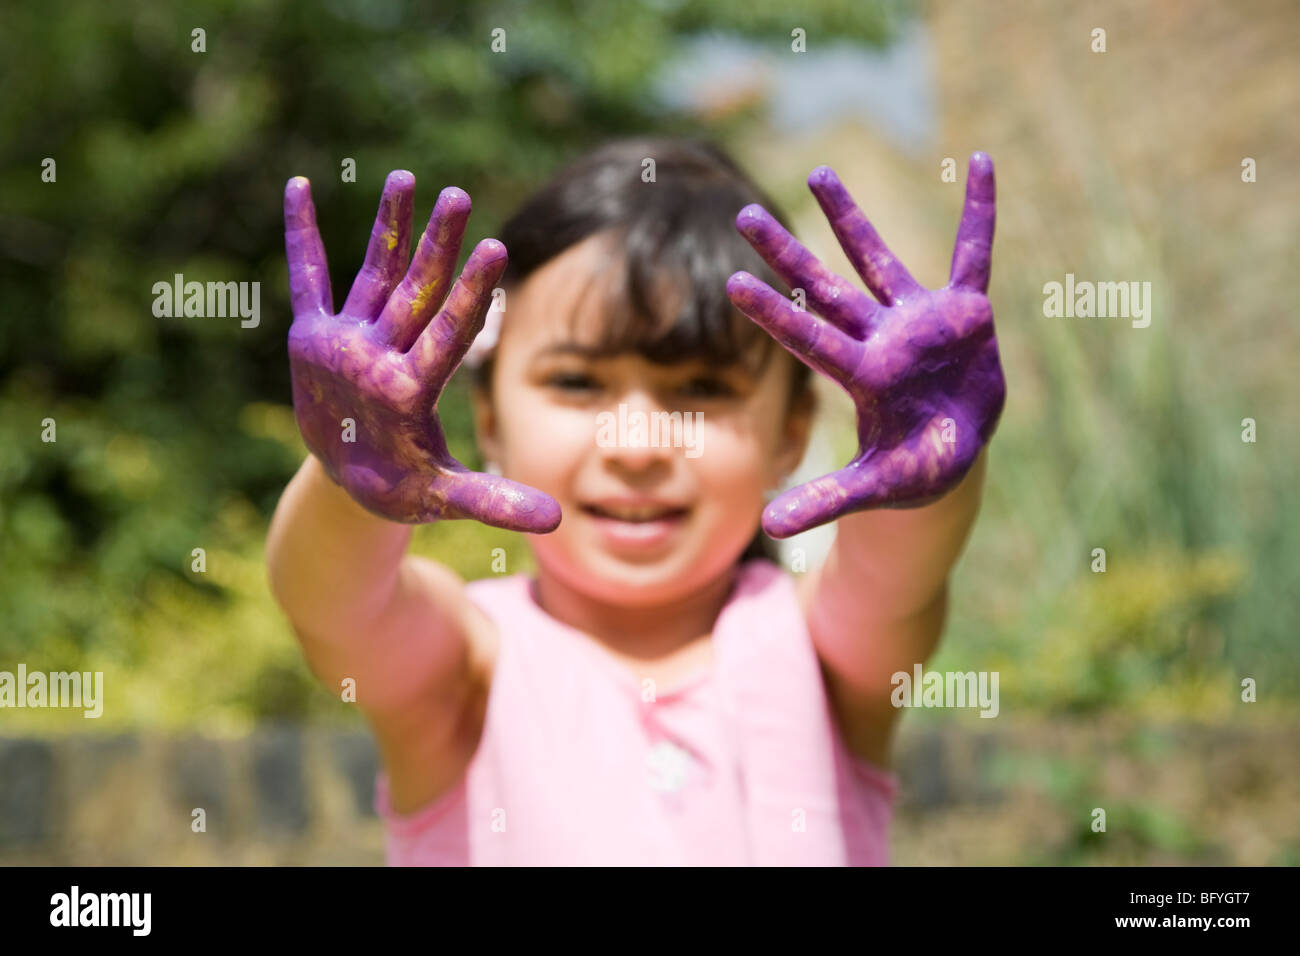 Girl with painted hands - Stock Image